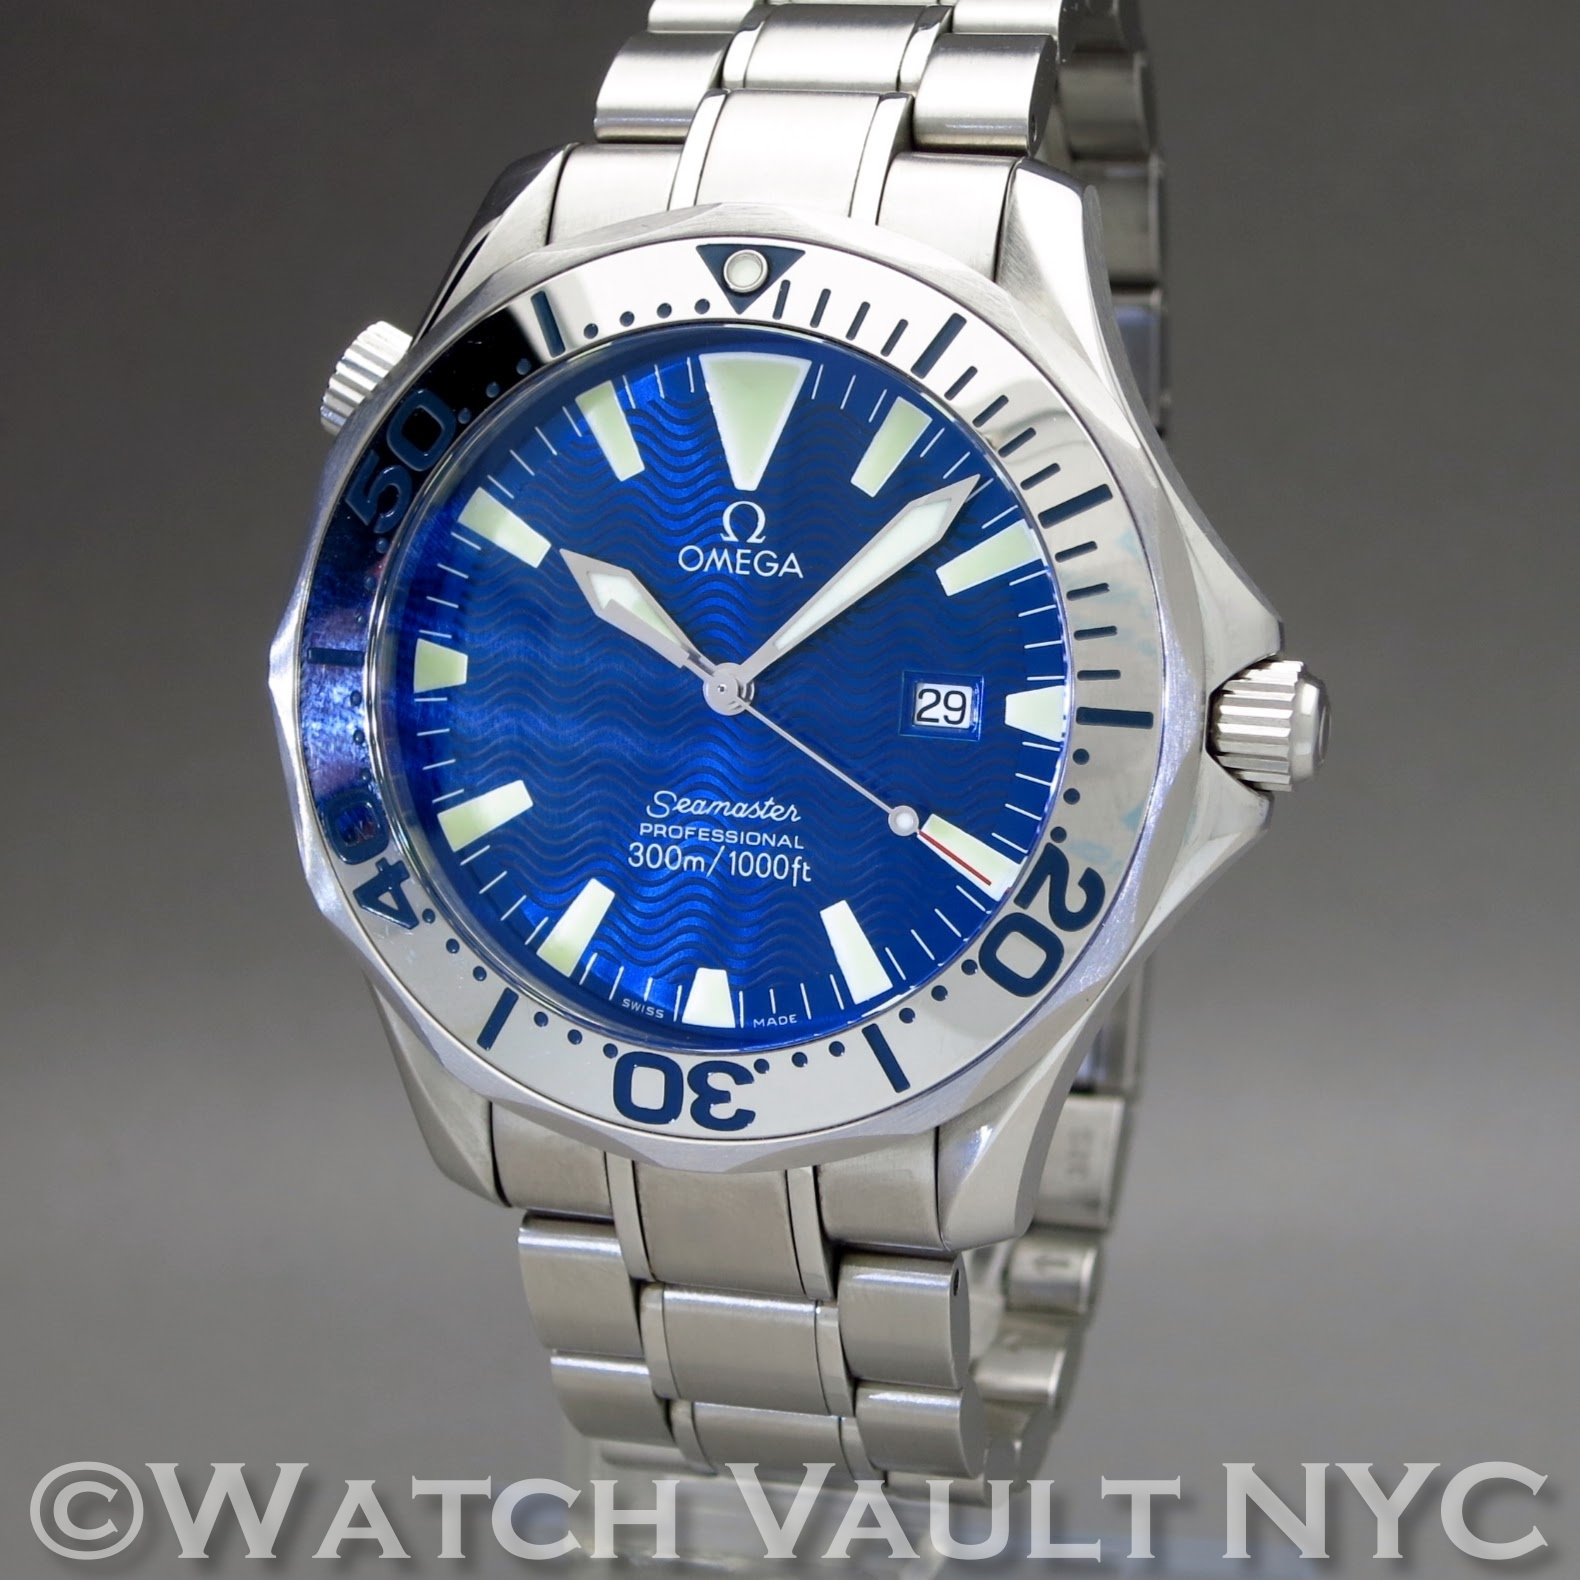 Omega seamaster professional electric blue 300m 41mm quartz for Omega seamaster professional